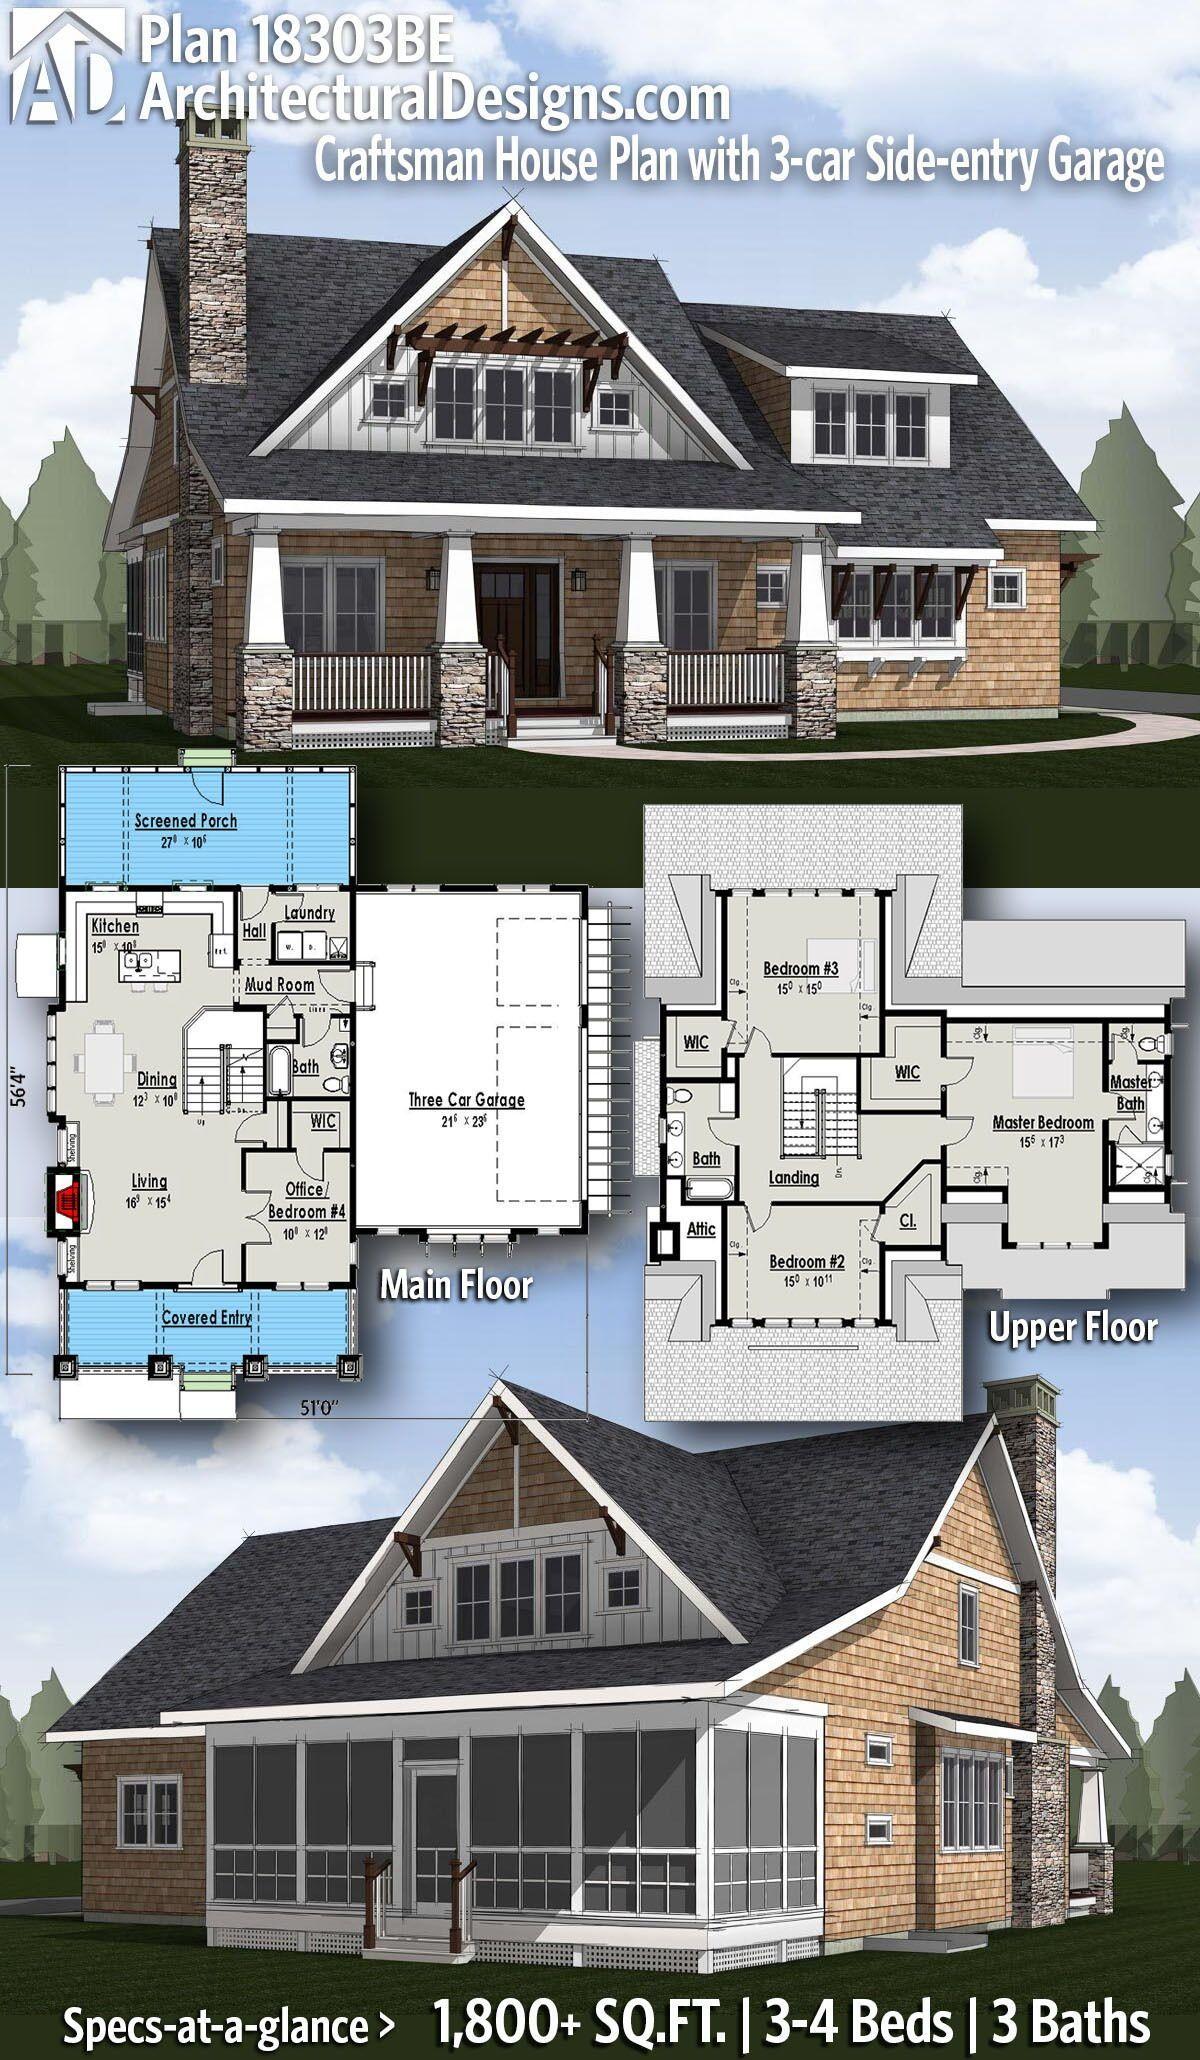 Plan 18303be Craftsman House Plan With 3 Car Side Entry Garage Craftsman Bungalow House Plans Craftsman House Plan Craftsman House